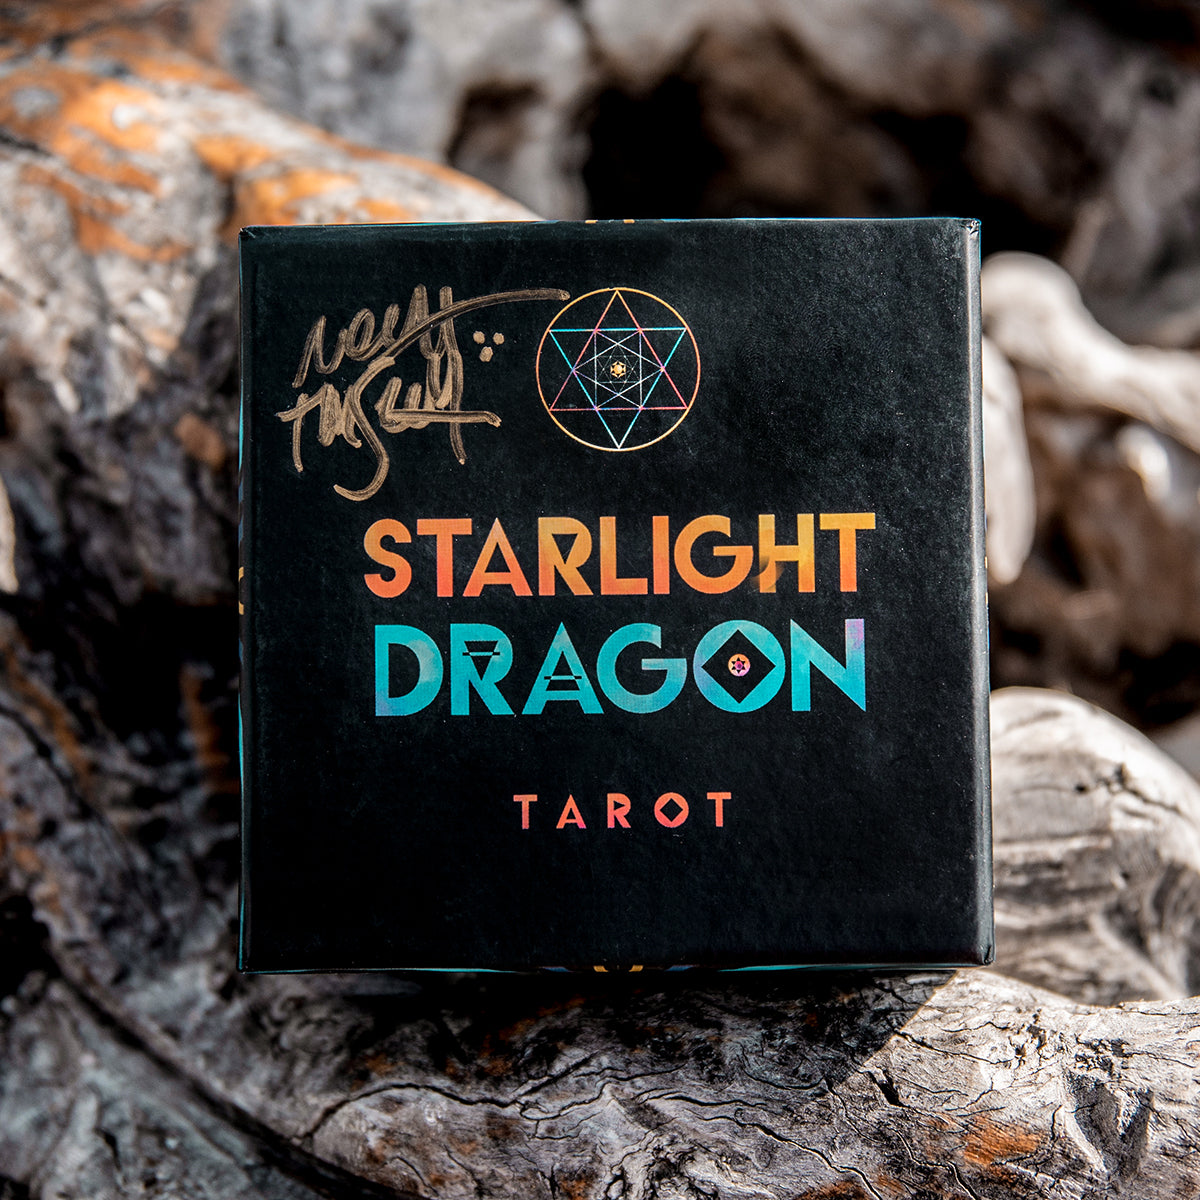 Starlight Dragon Tarot